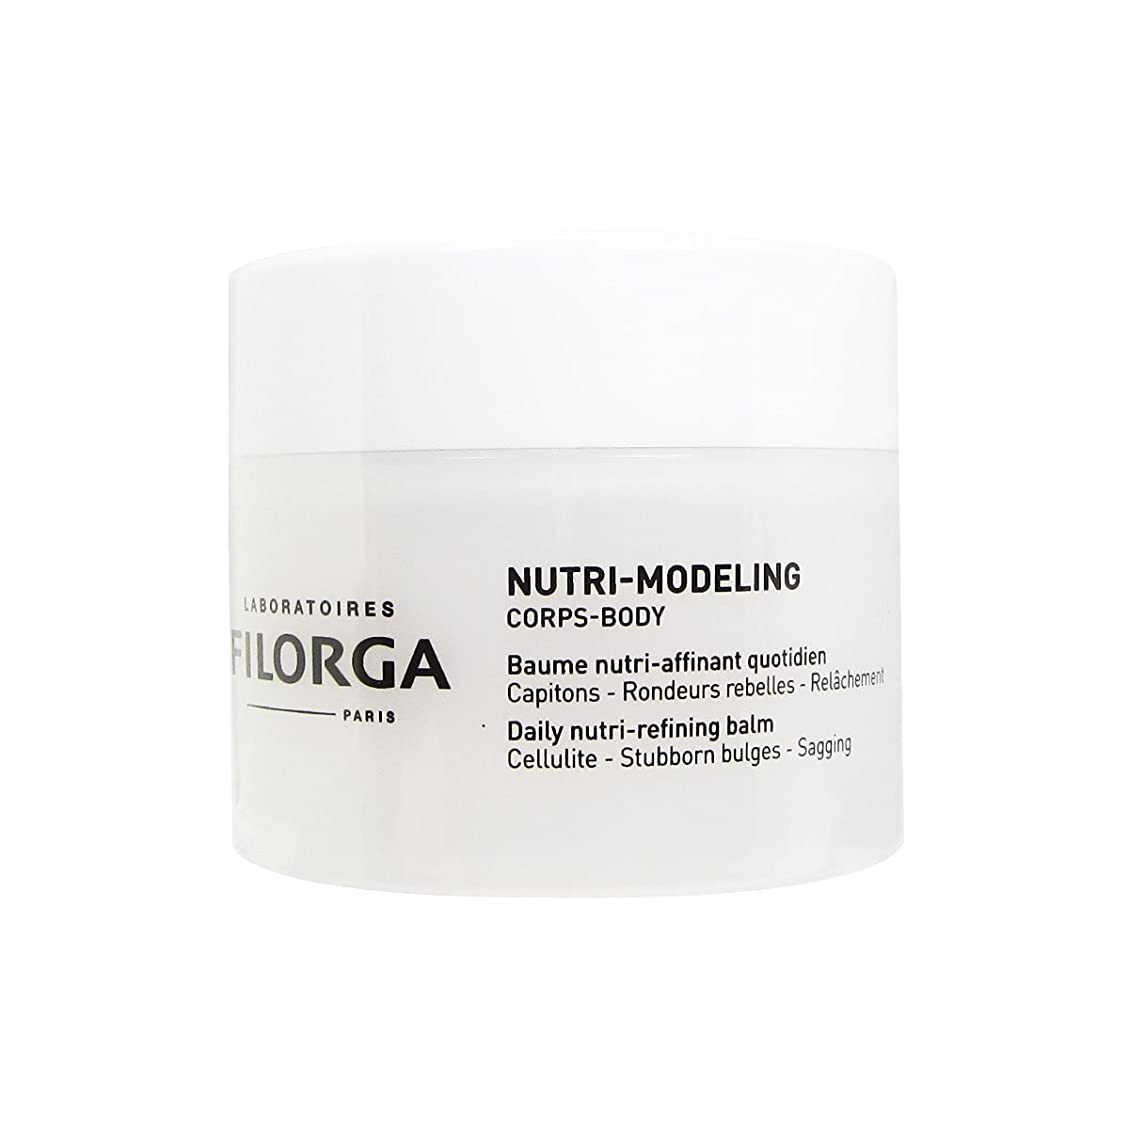 旋回周辺ヒギンズFilorga Nutri Modeling Daily Body Enhancer 200ml [並行輸入品]